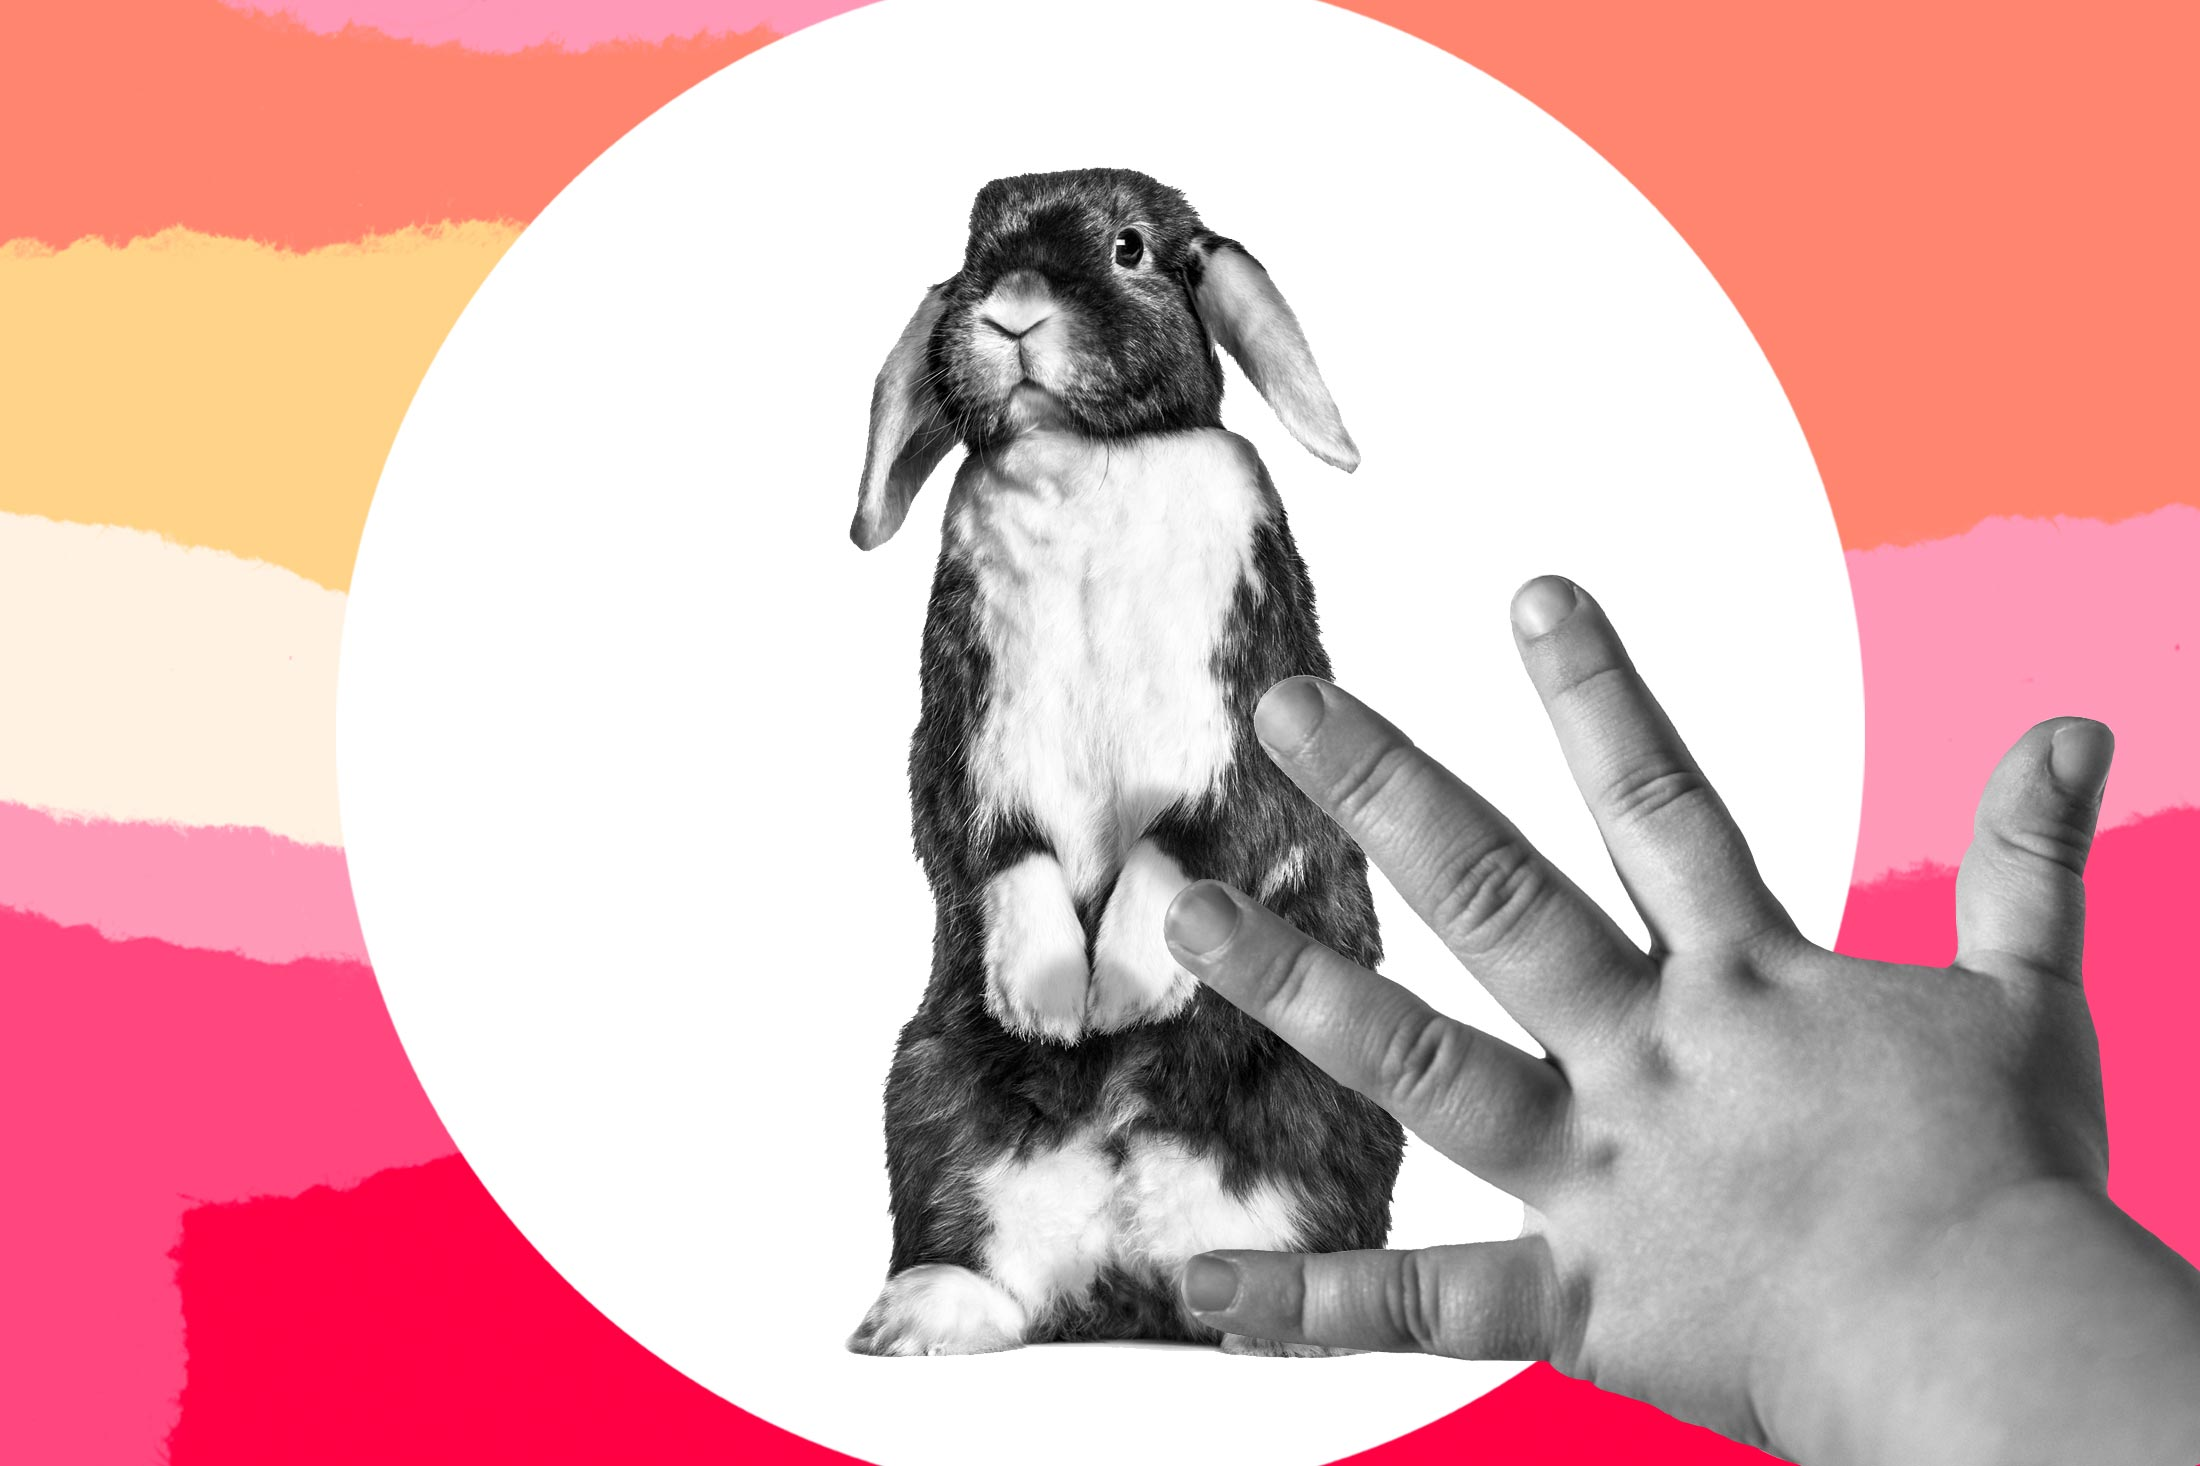 Photo illustration of a toddler petting a bunny.